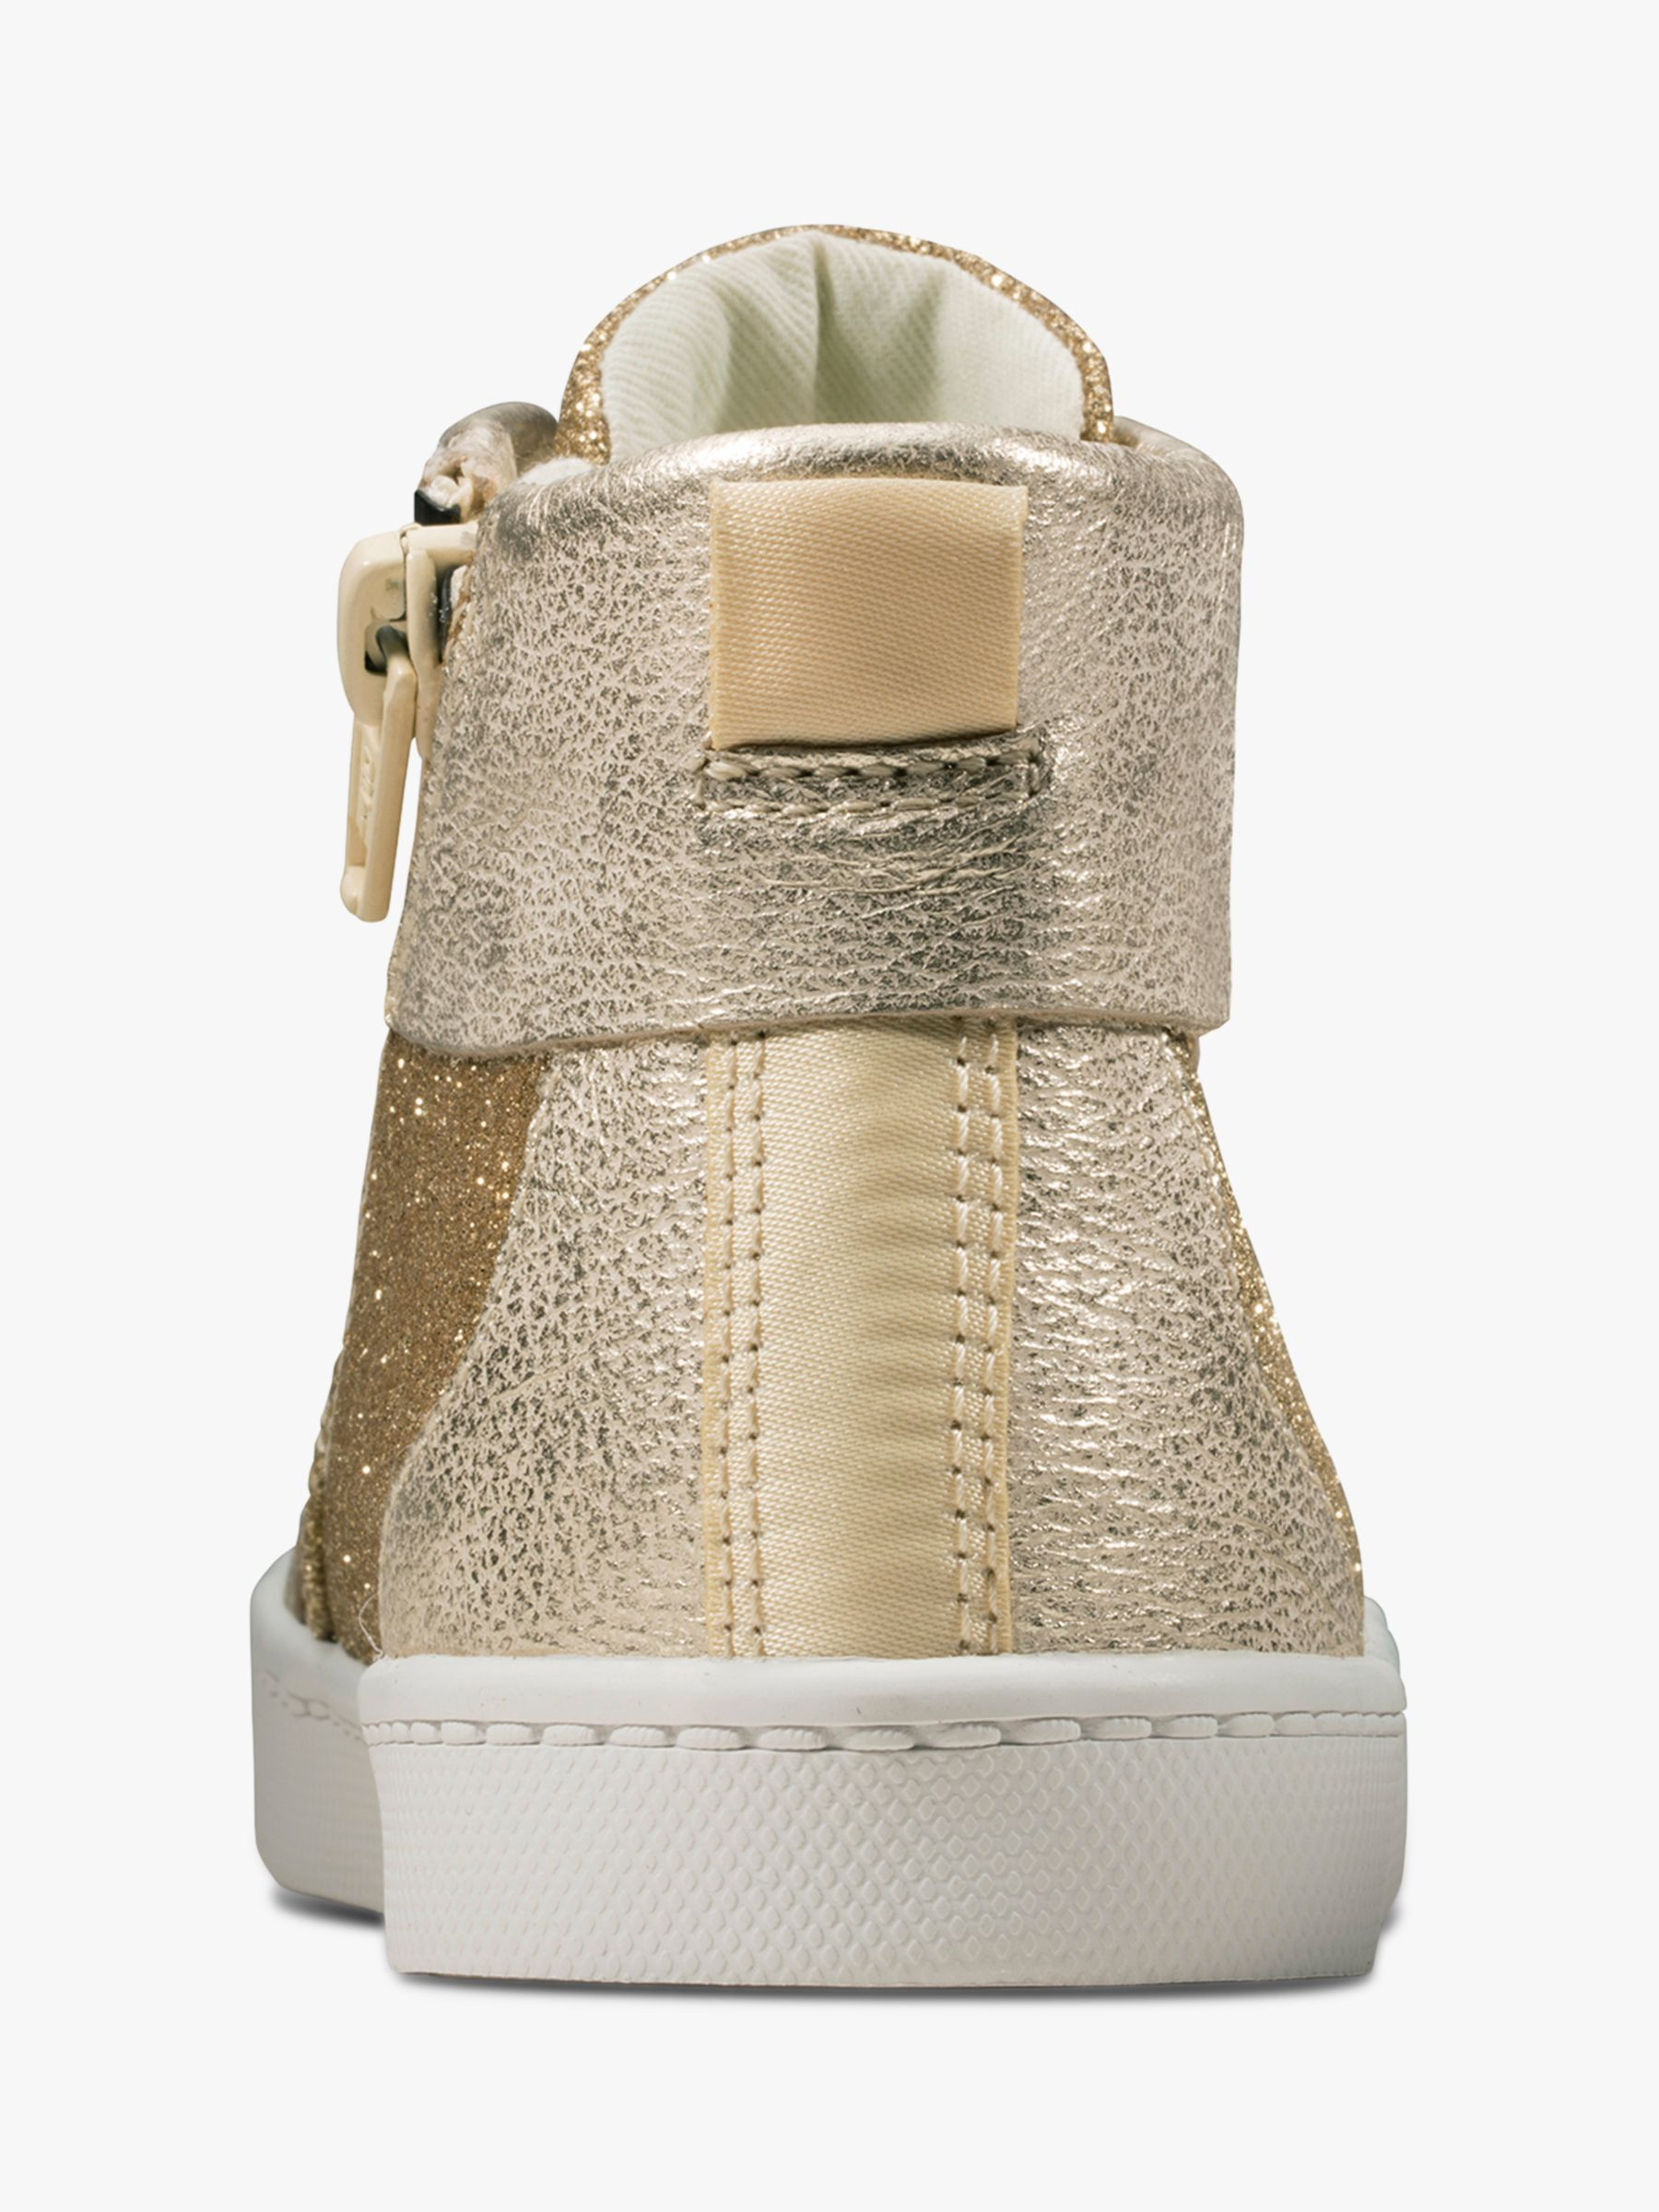 clarks high top trainers